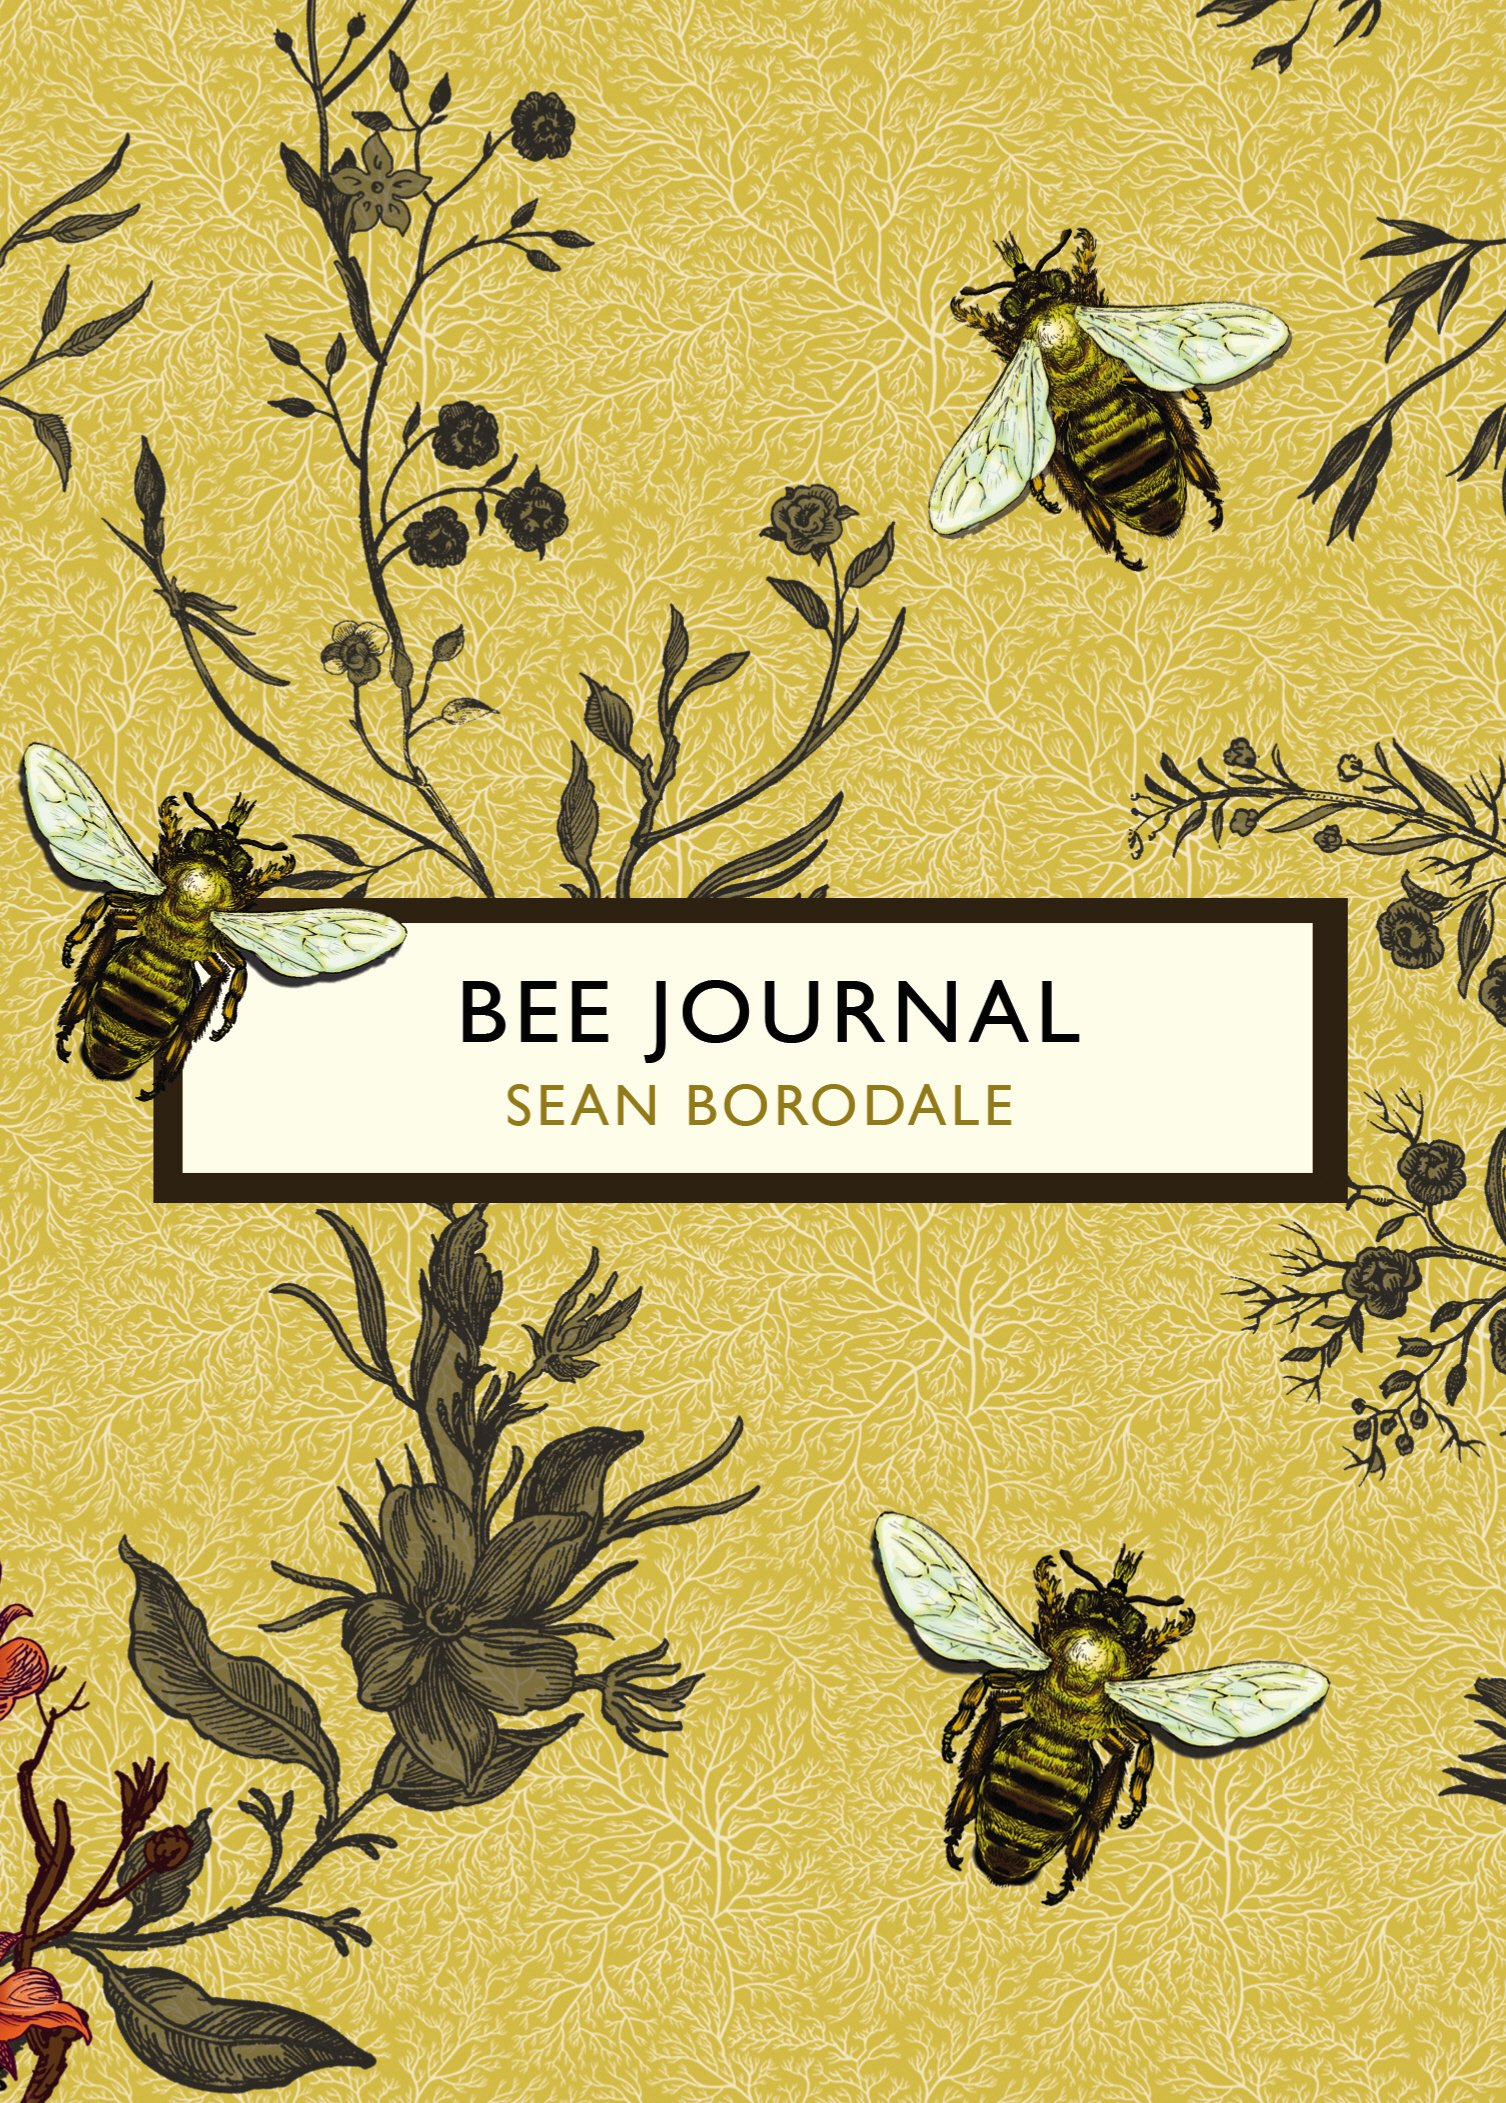 Bee Journal (Vintage Classic Birds and Bees Series)